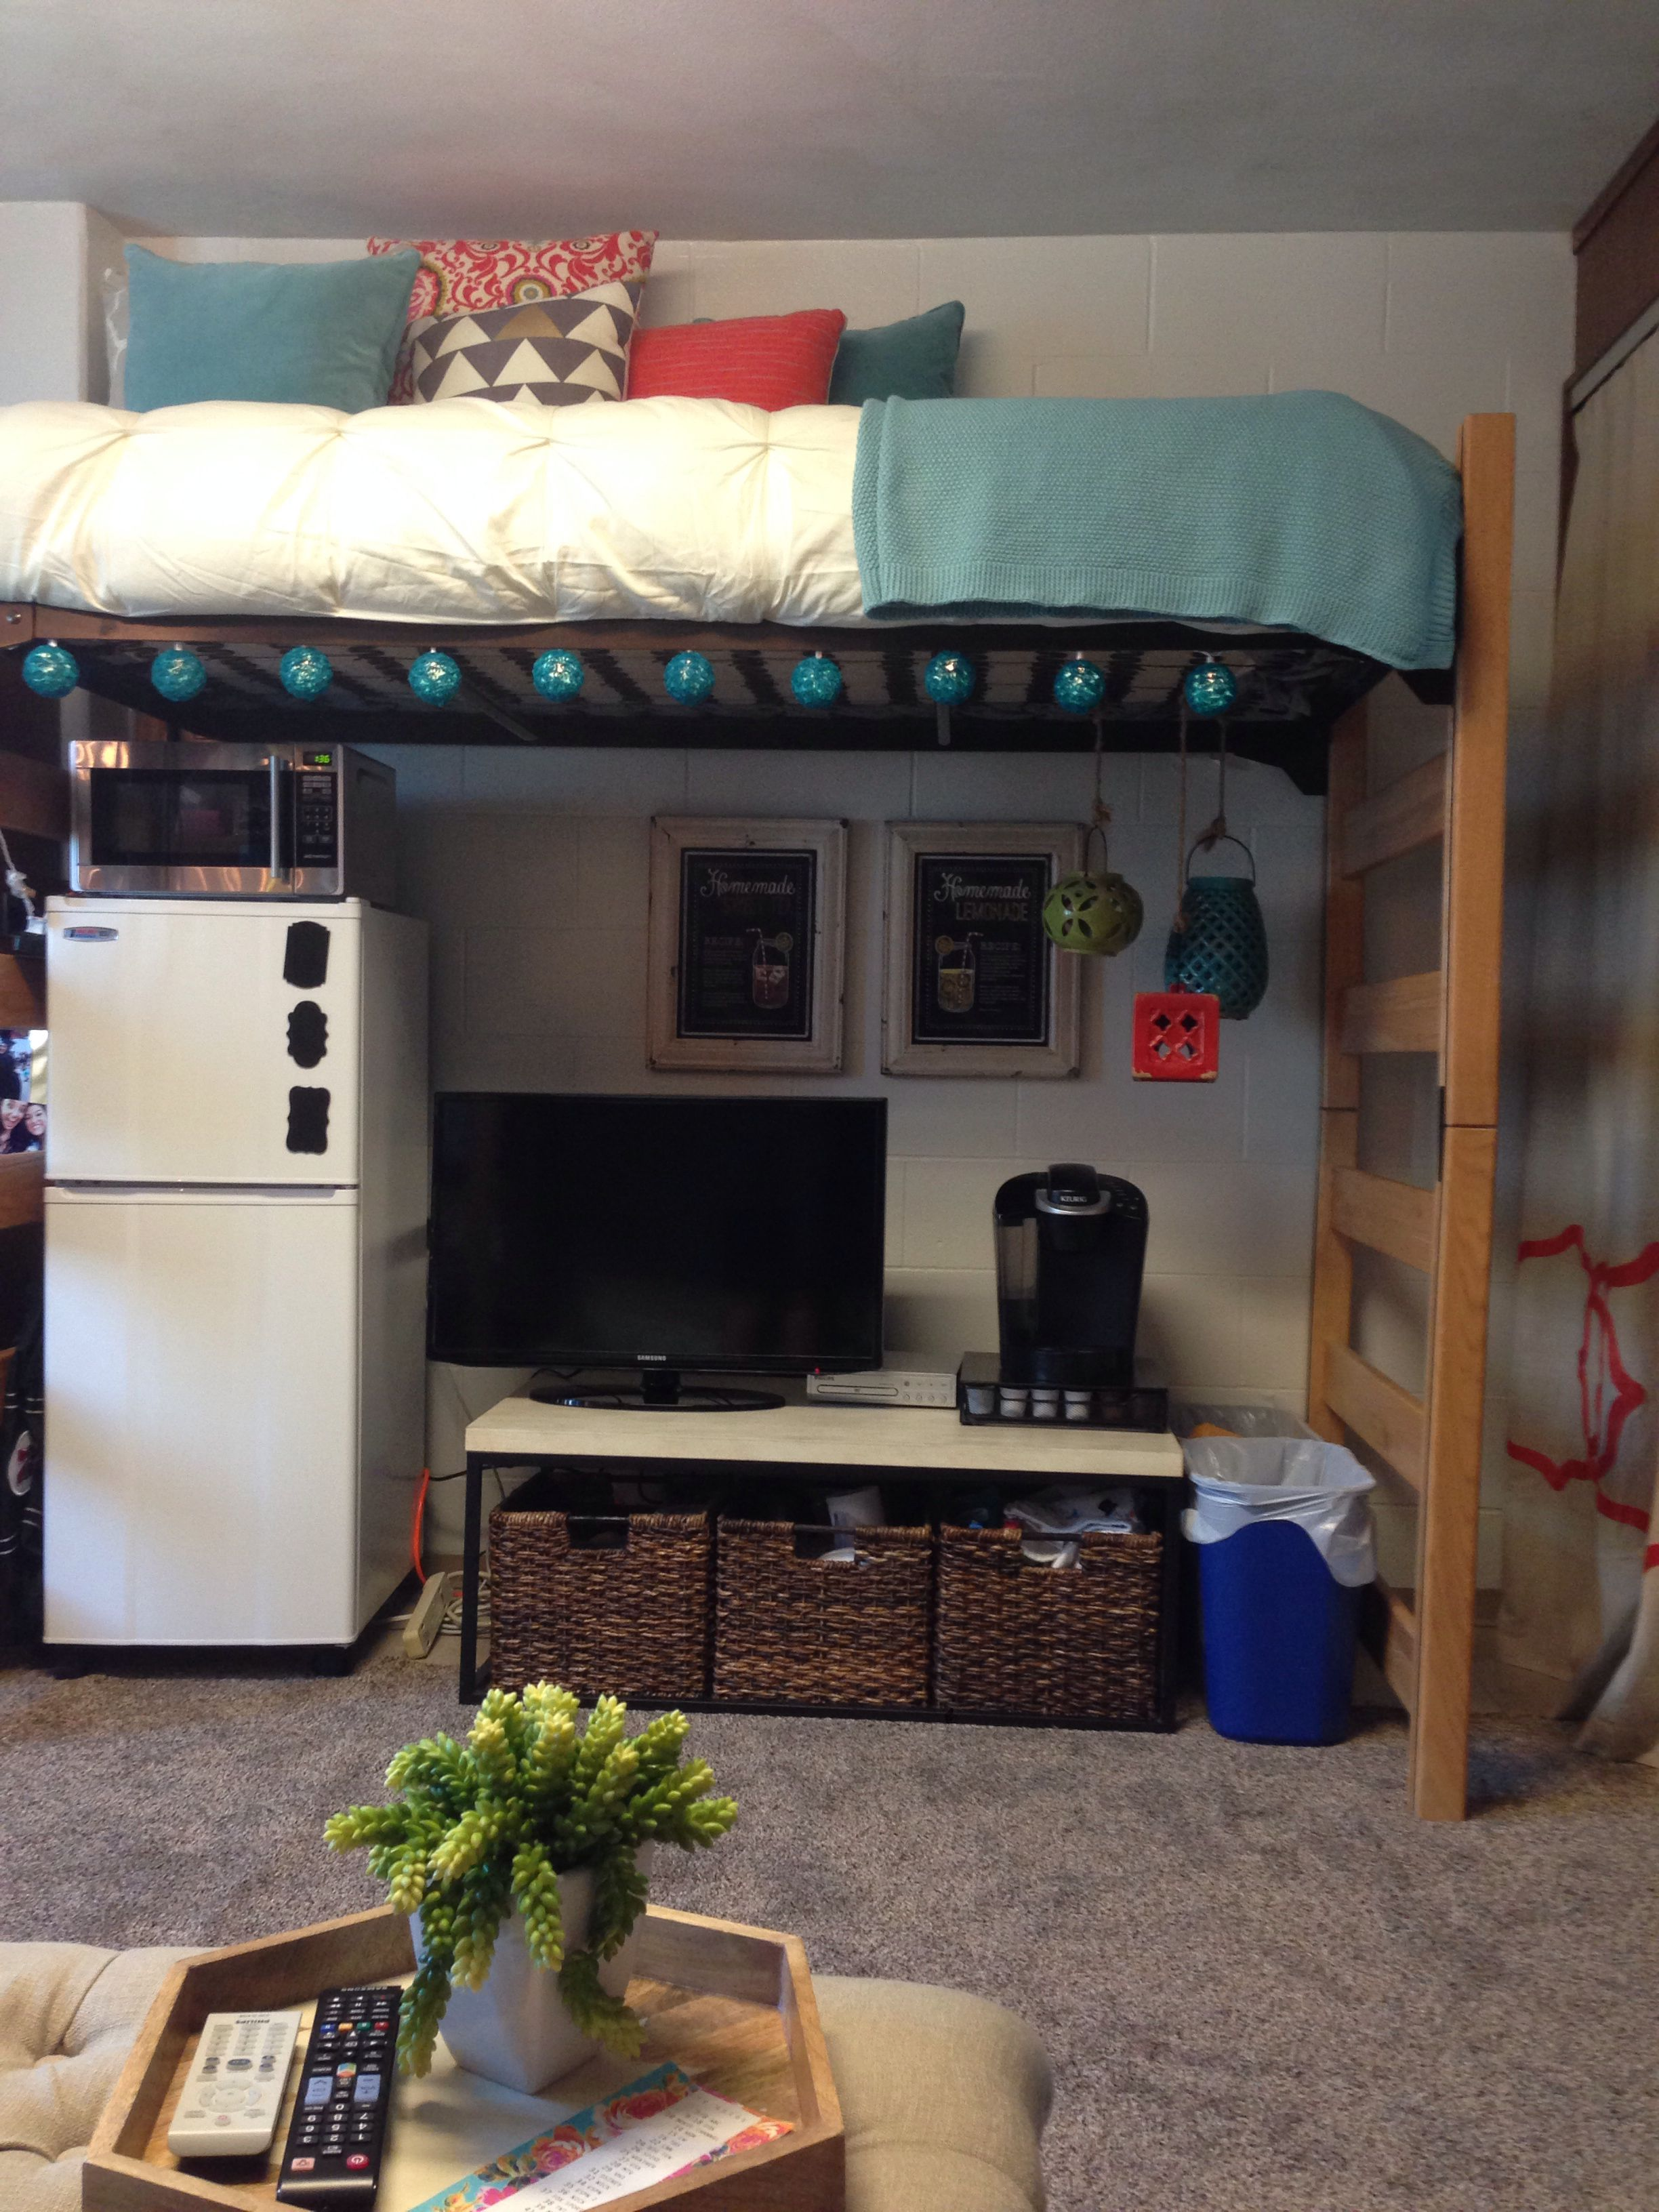 And the other bed across could also be lofted for a small